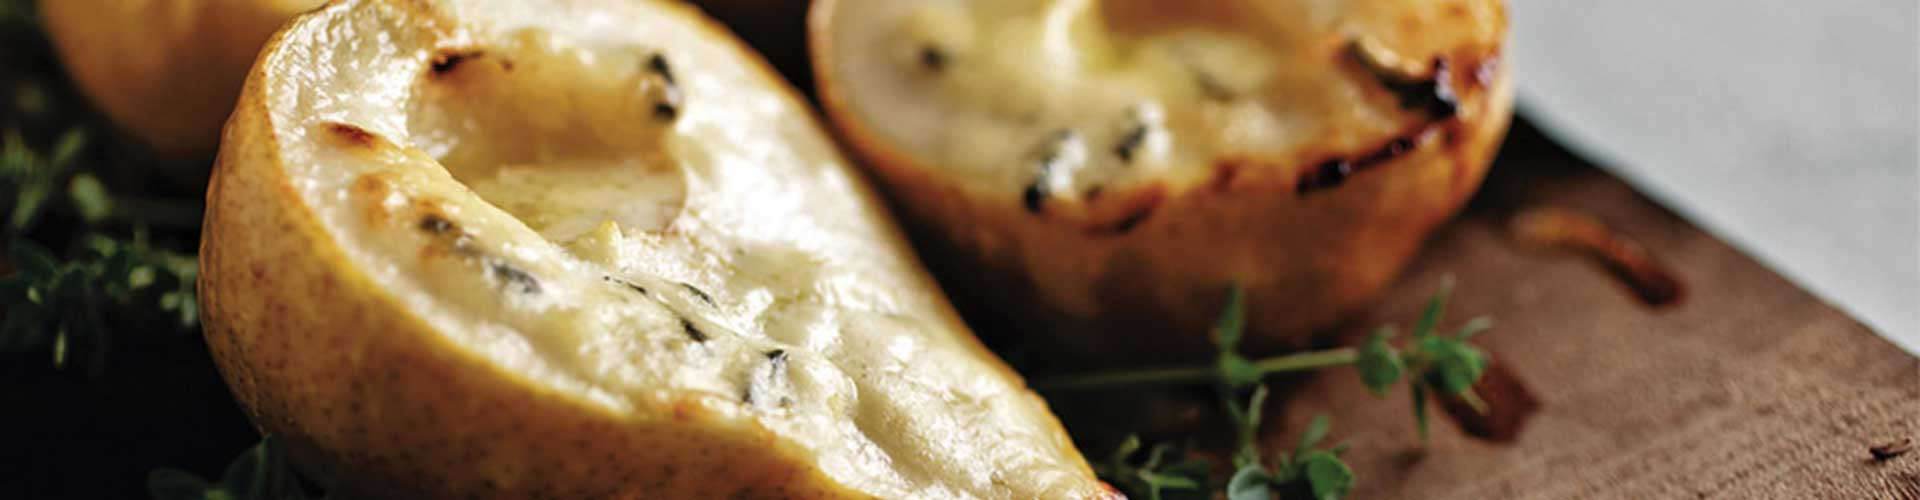 Plank Roasted Pears with Blue Cheese